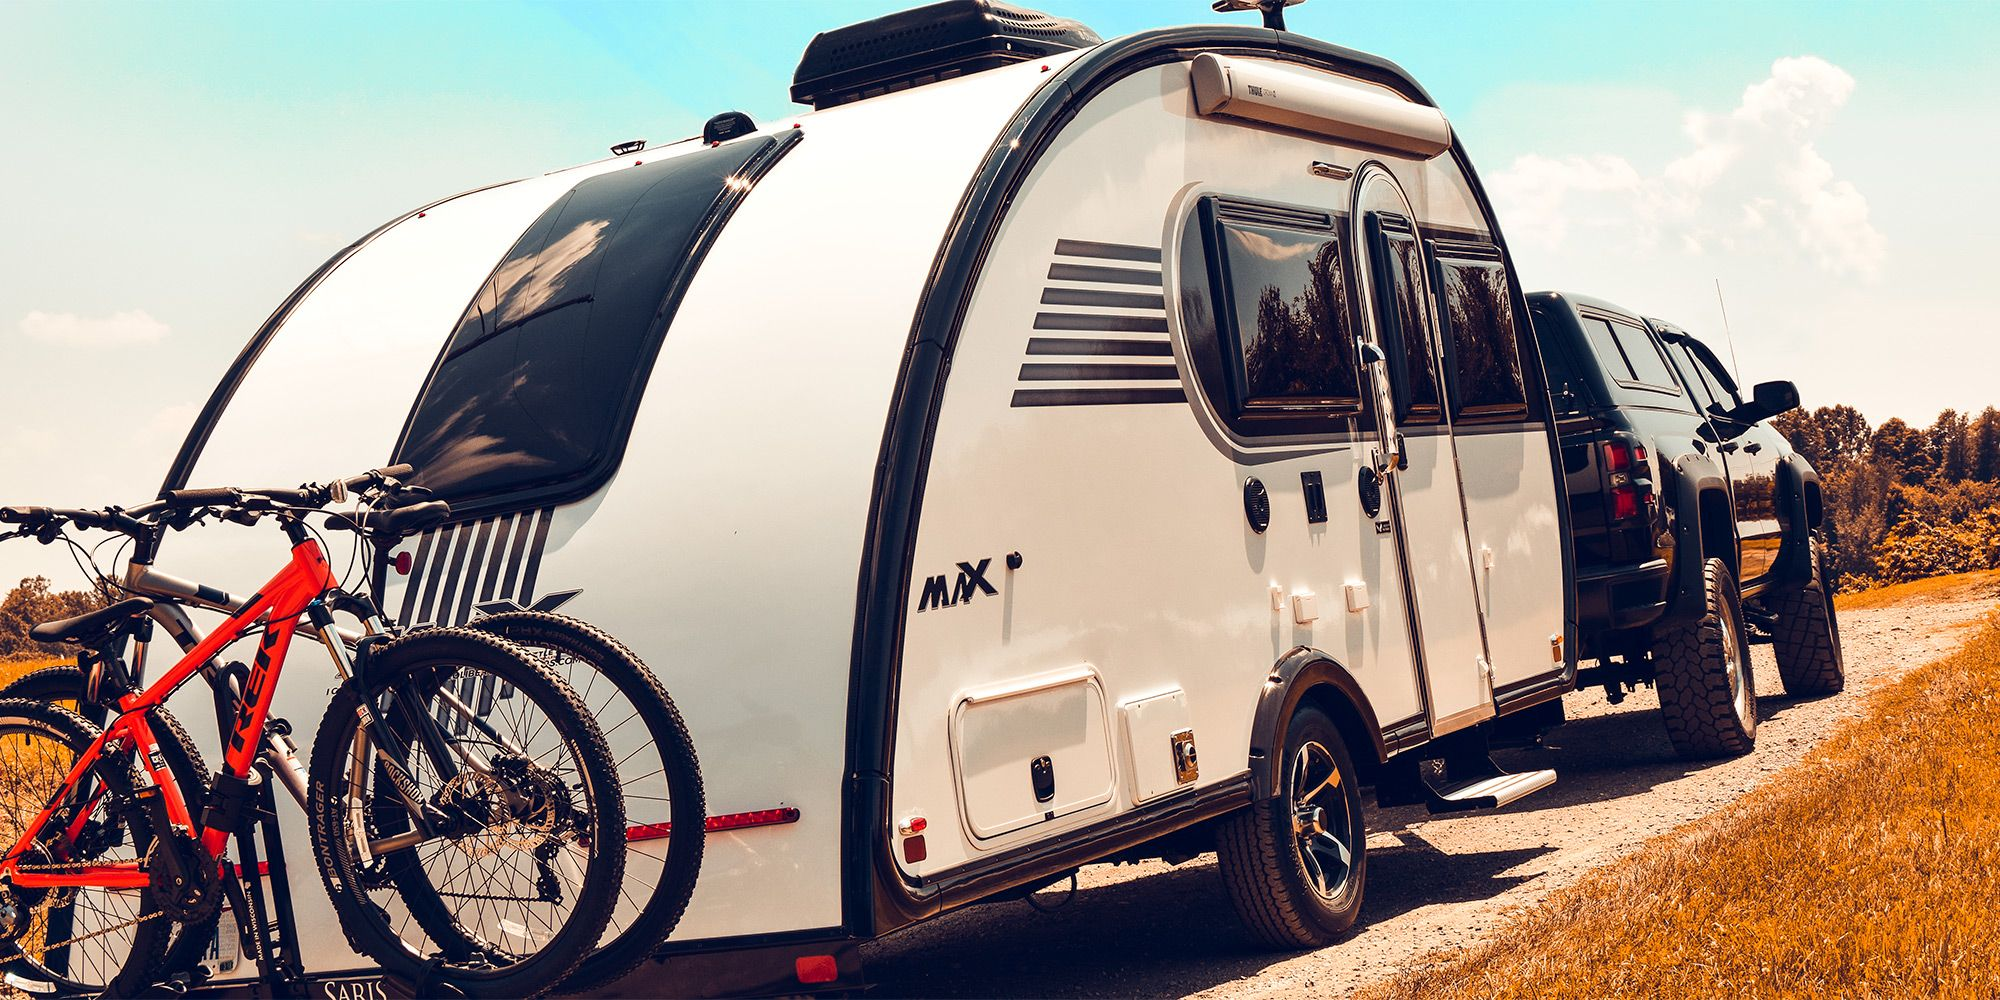 Pin By Cleatus Varney On Camping In 2020 Small Suv Mini Camper Guys